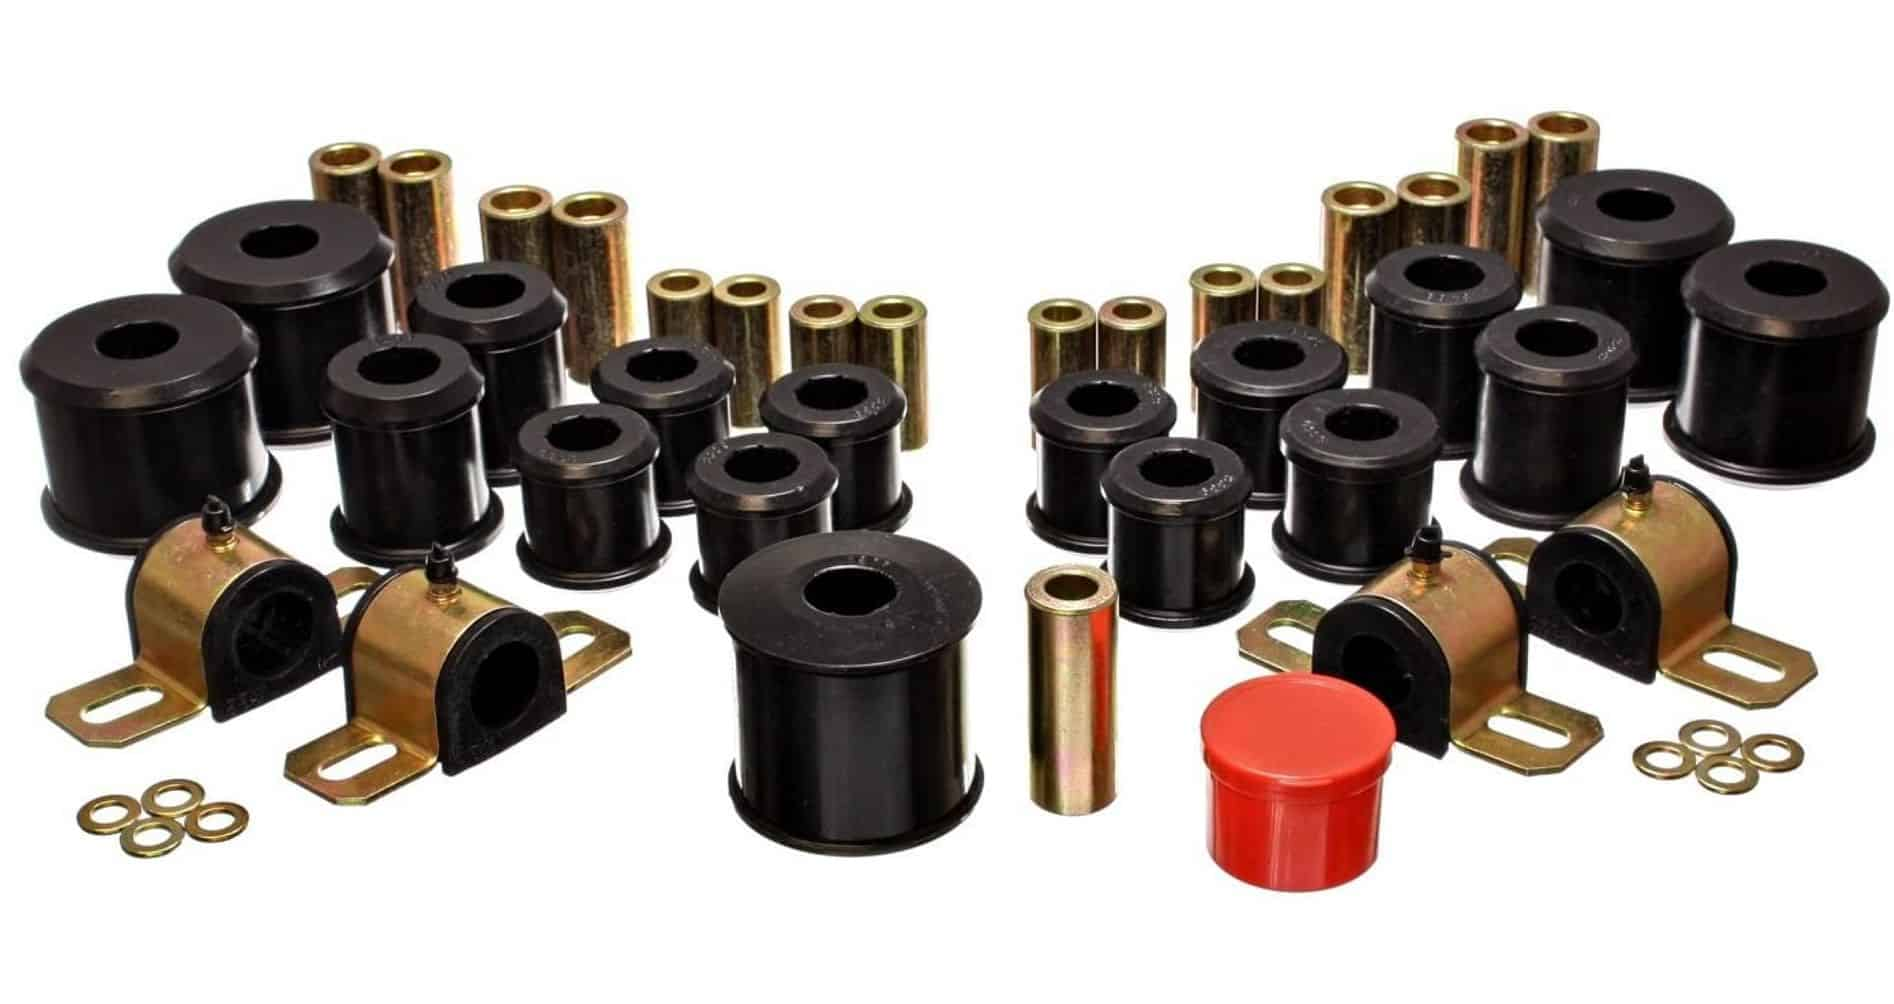 Master Kit: 63-82 Corvette Bushes & Mounts (USA Made)